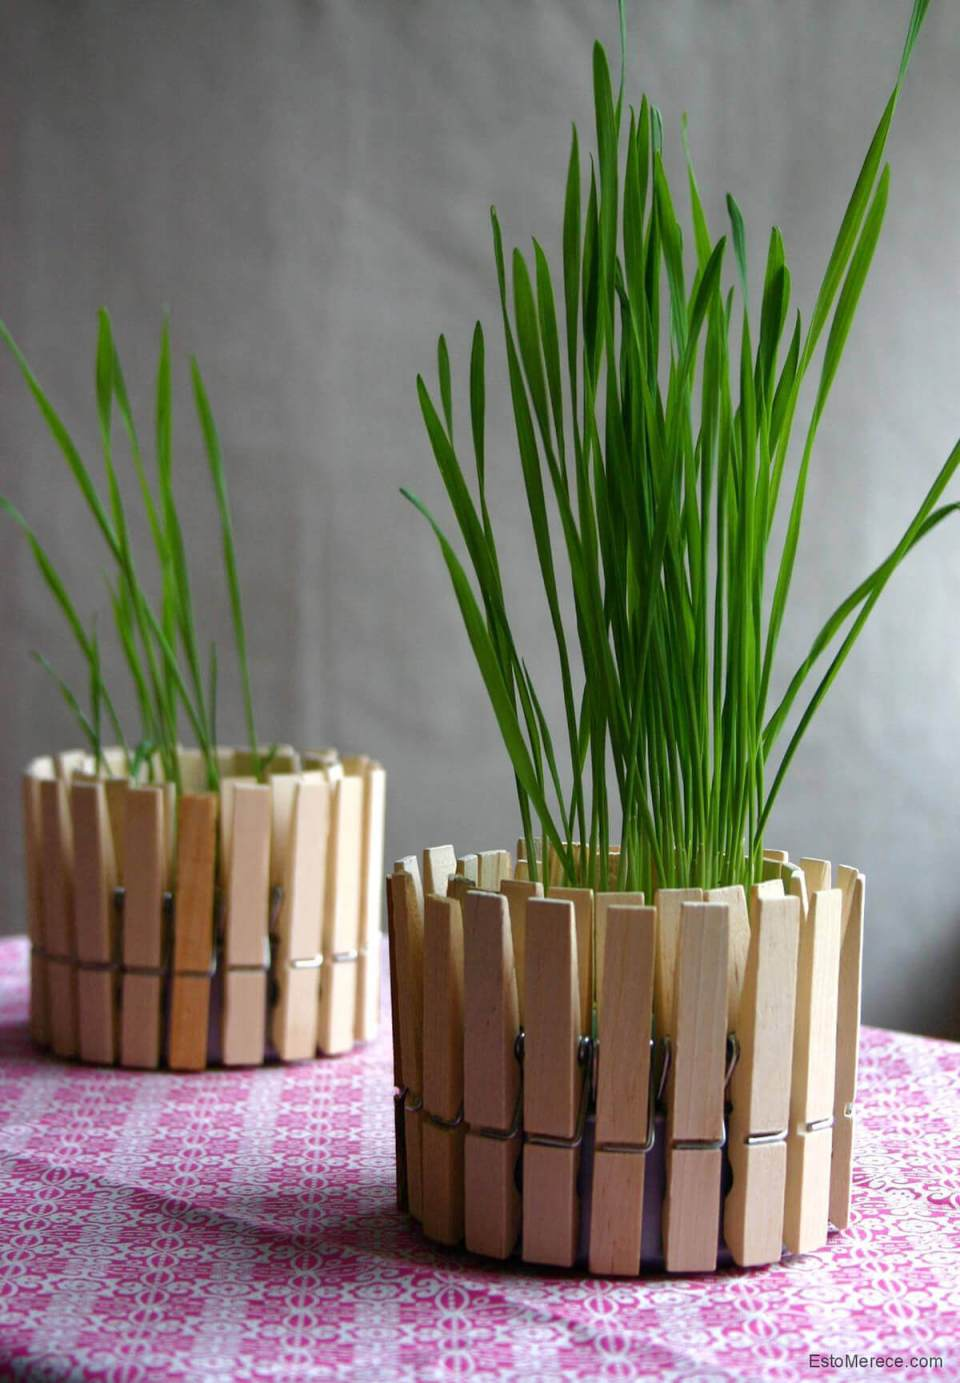 Decorative Grass with Clothespin Fence